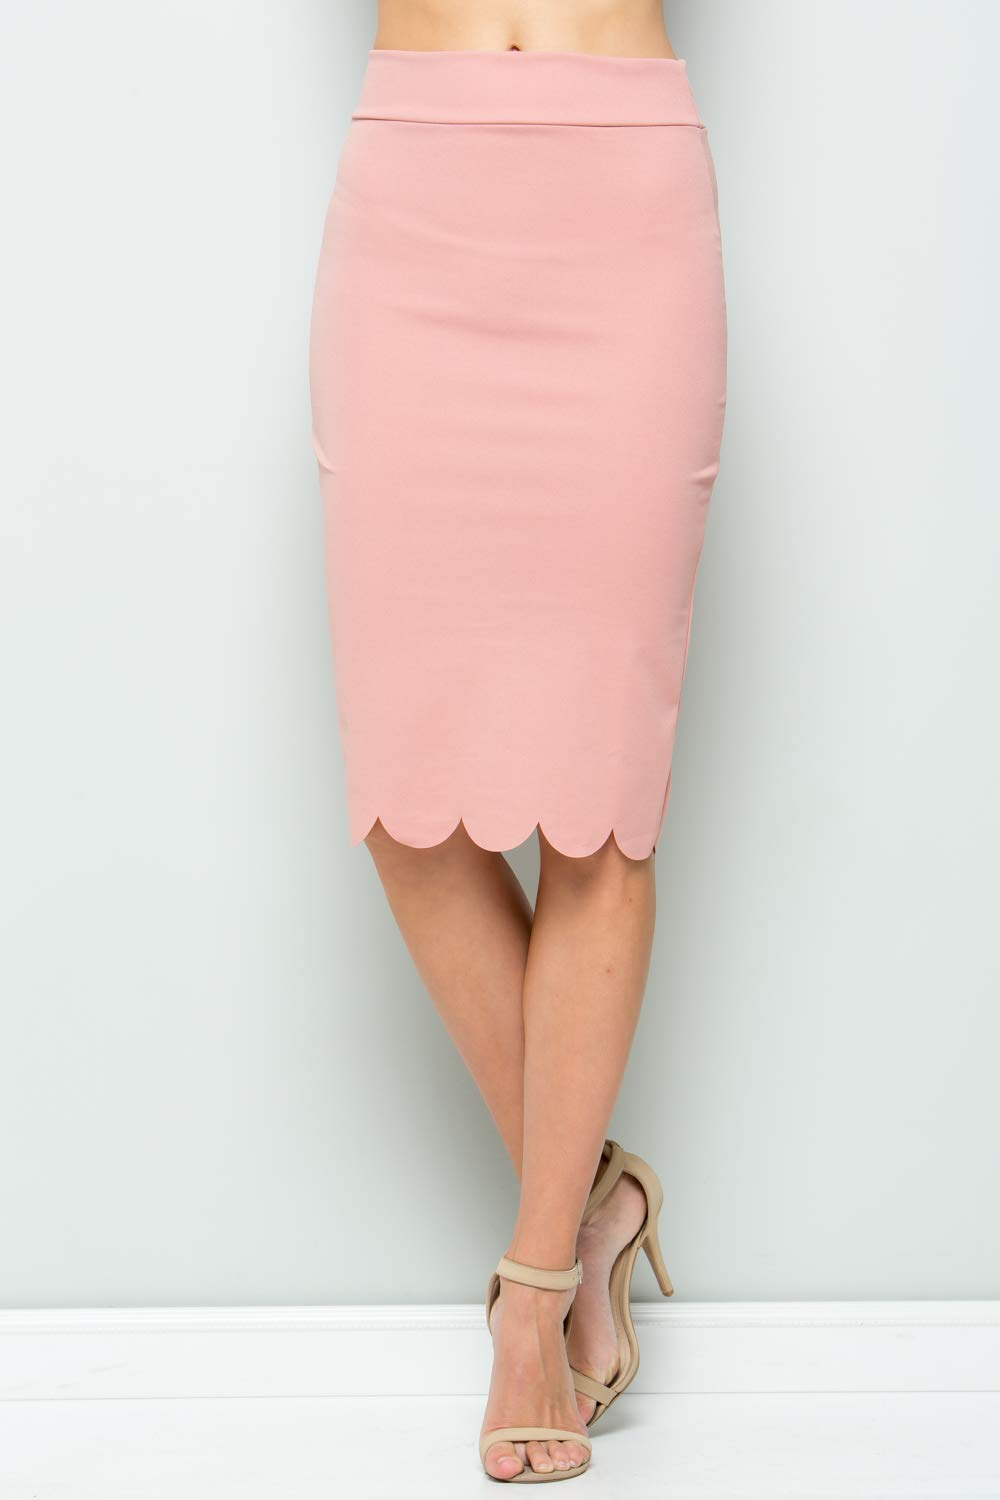 Junky Closet Women's Scallops Knee Length High Waisted Pencil Skirt (Made in USA) (1X-Large, 3635CLAF Dusty Pink) by Junky Closet (Image #2)